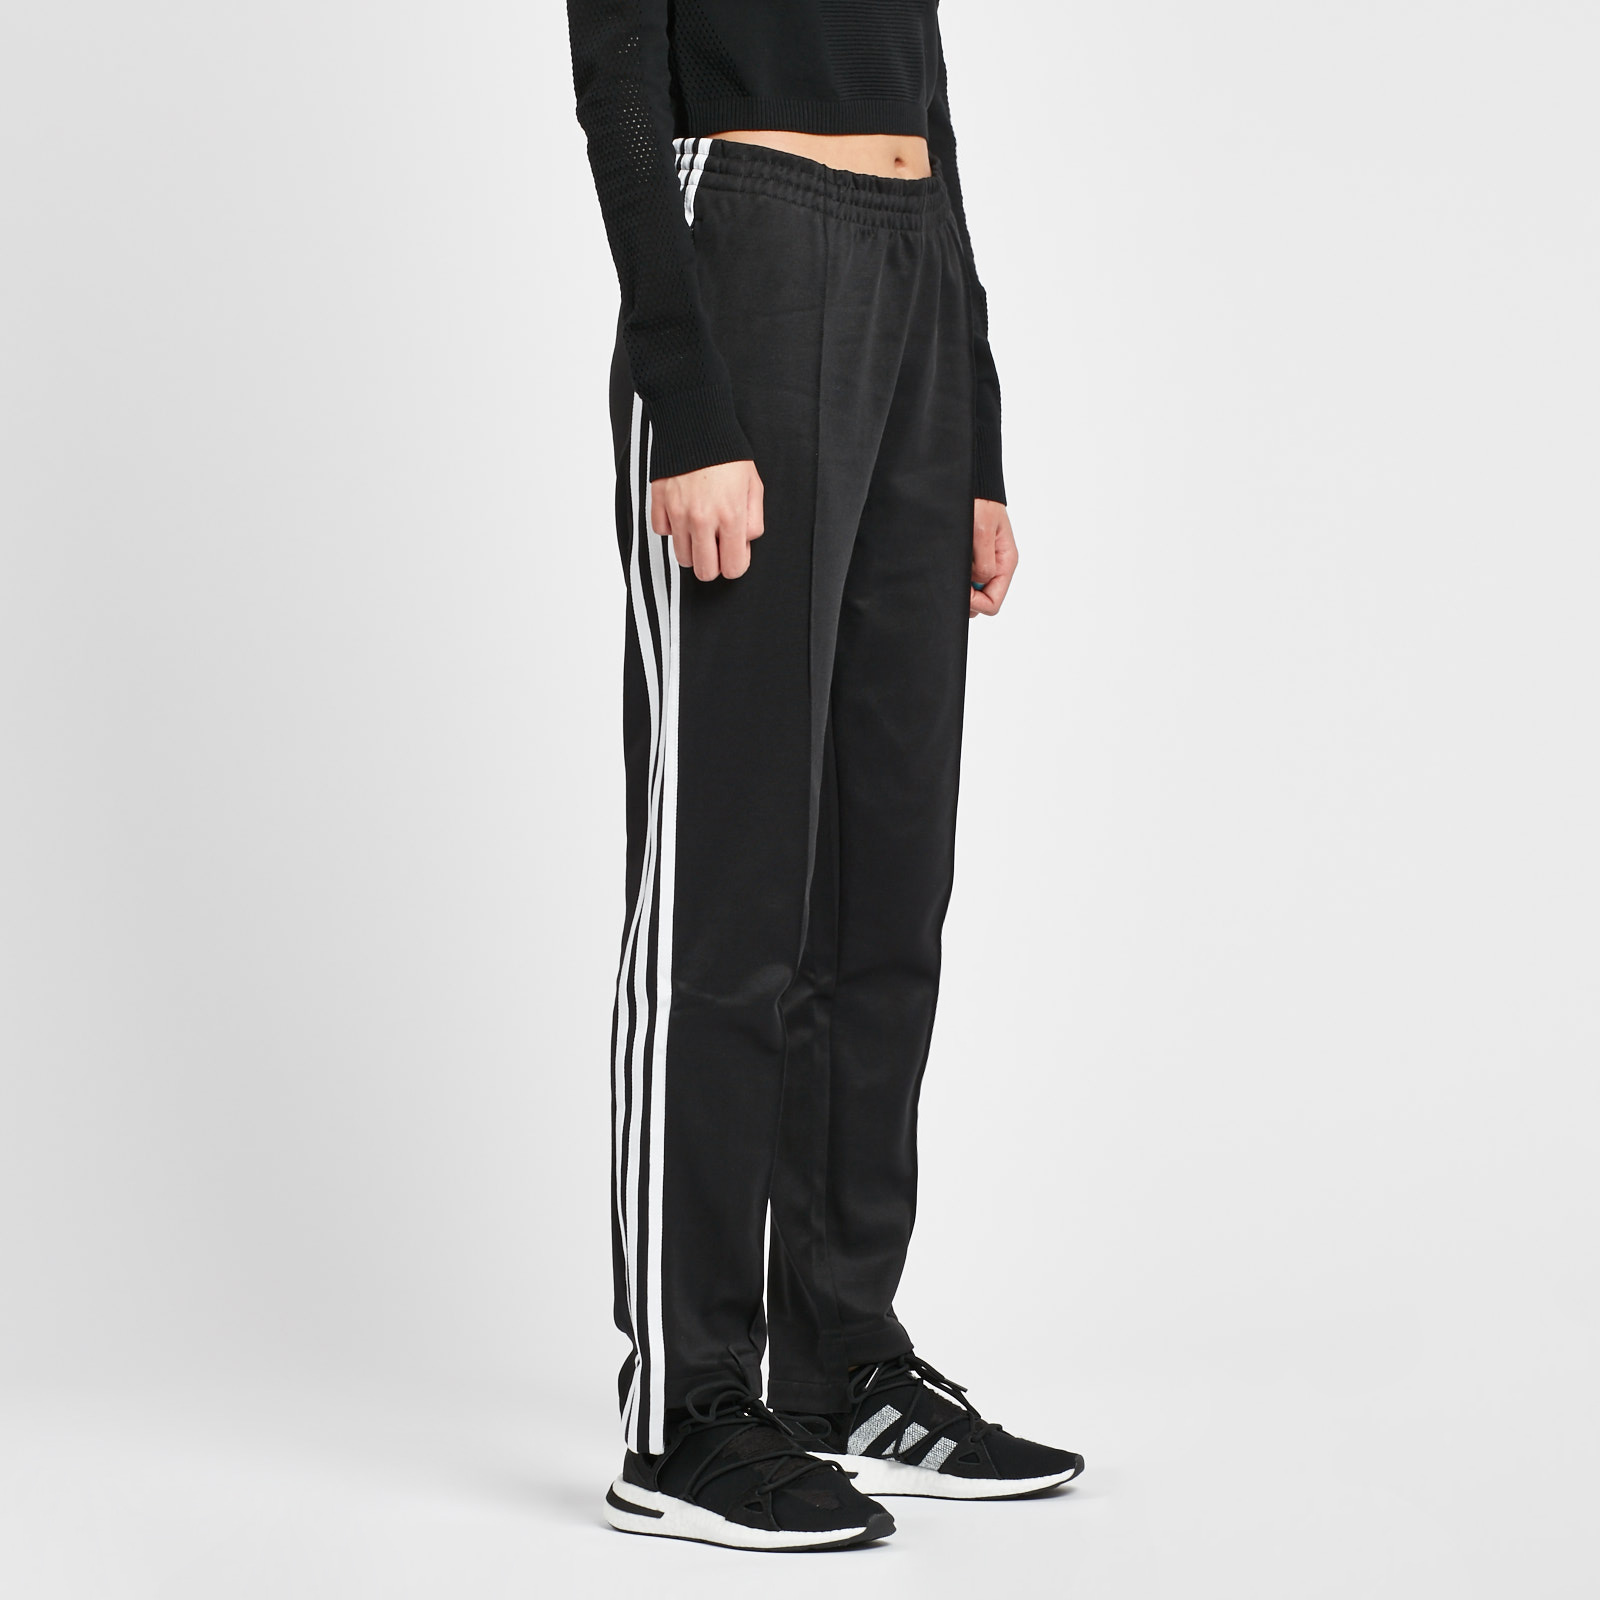 93ddd1f2cda adidas Track Pant x Naked - Cy4790 - Sneakersnstuff | sneakers ...